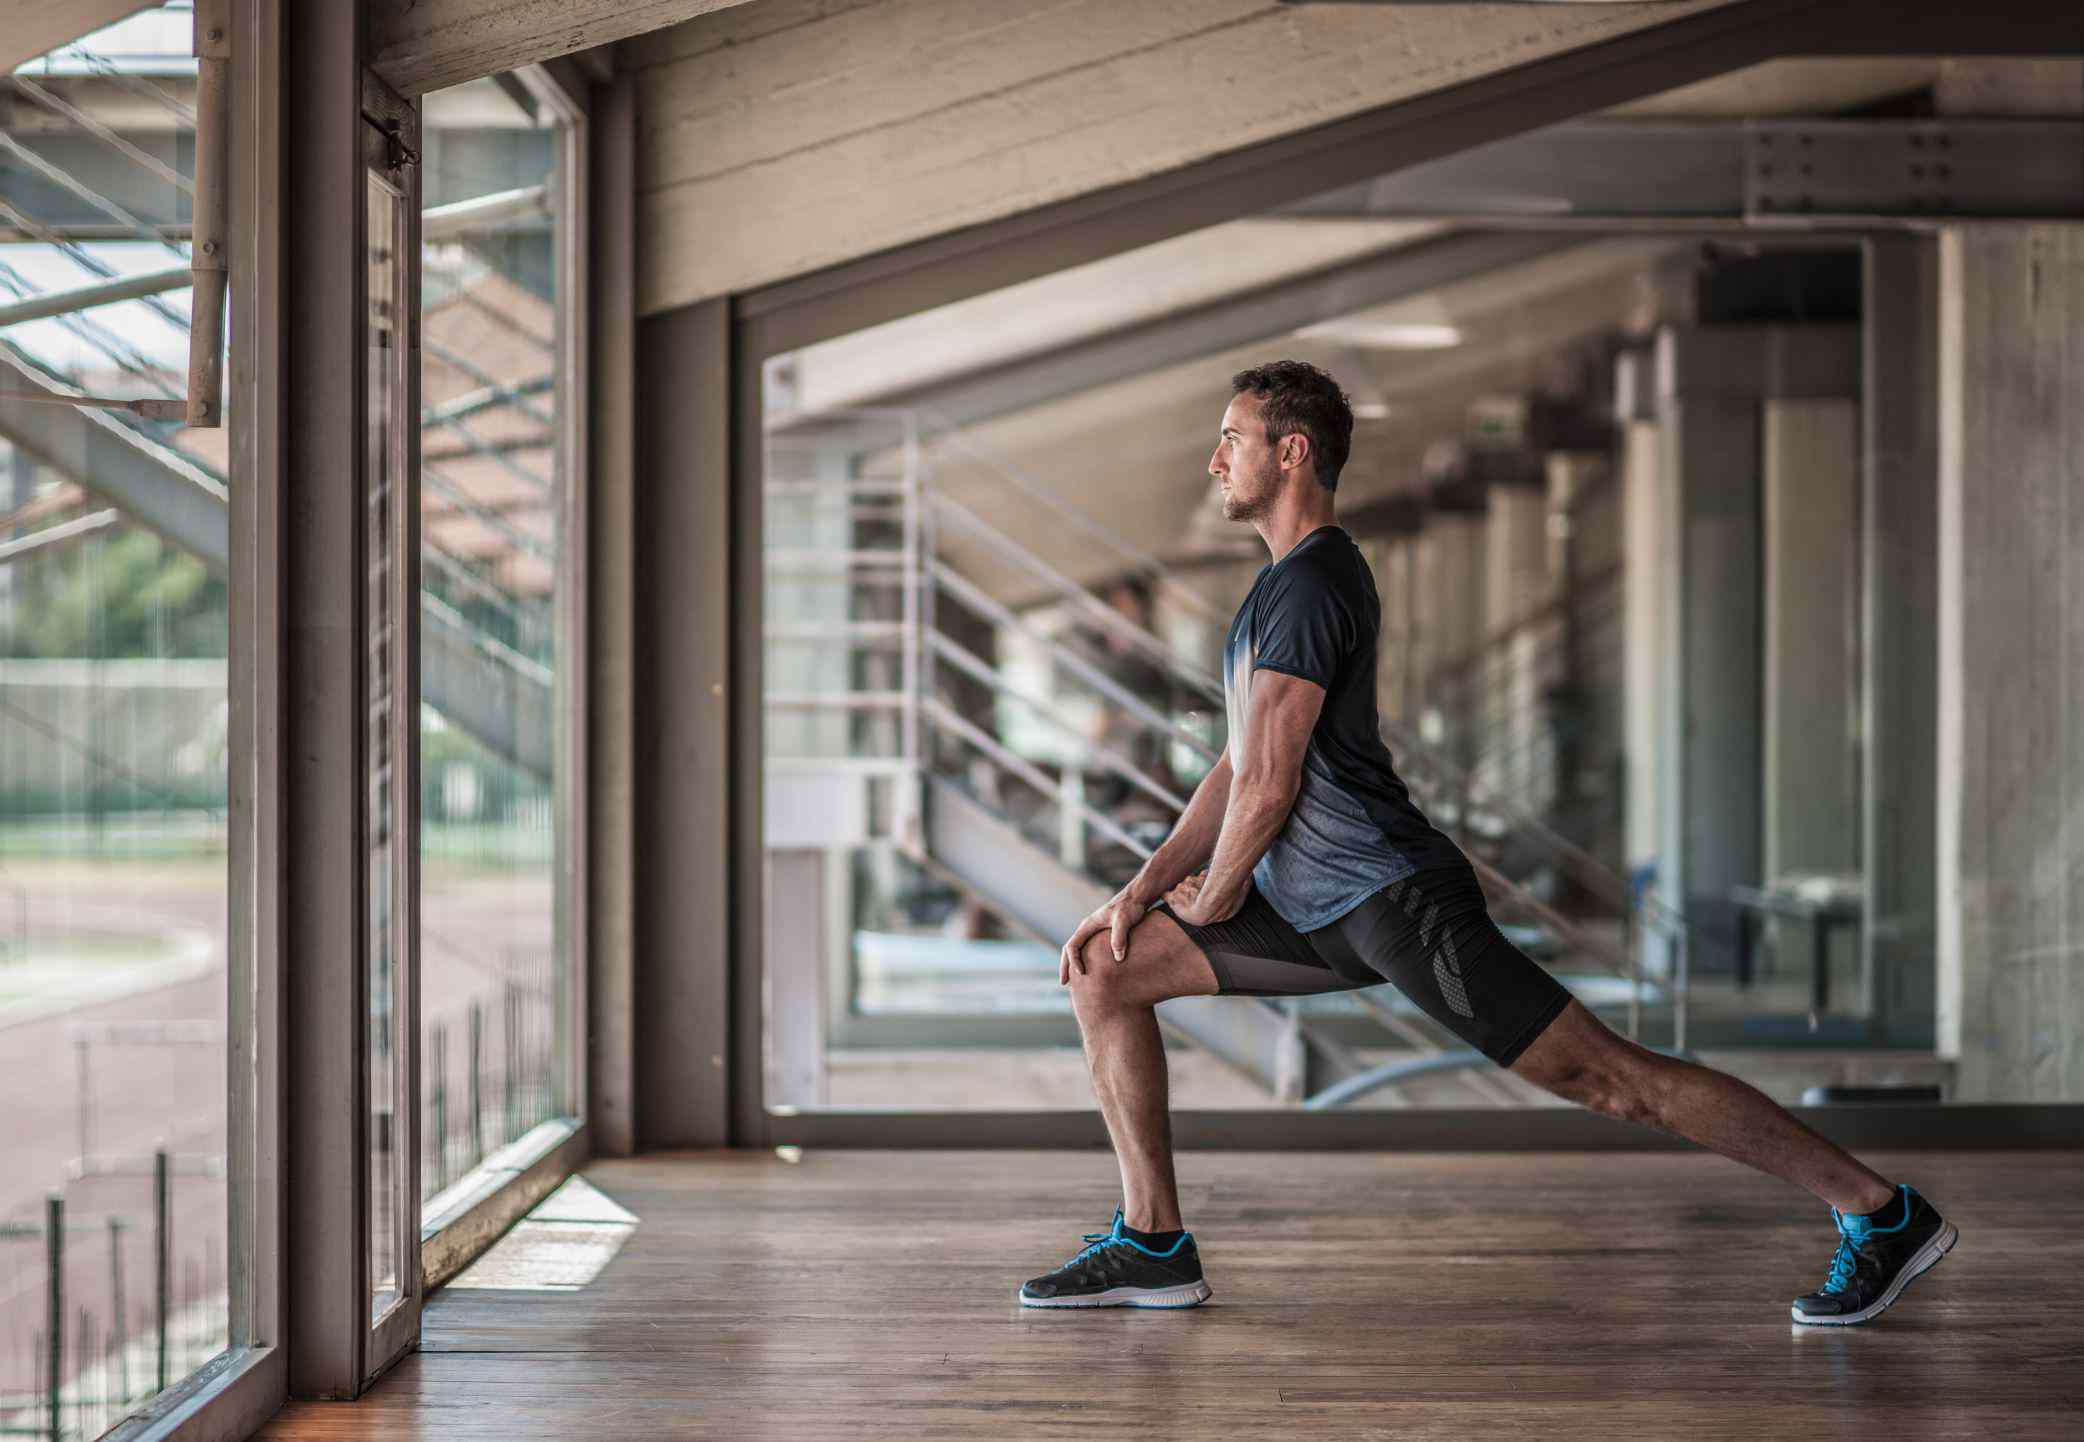 Man doing a leg lunge in a sports stadium